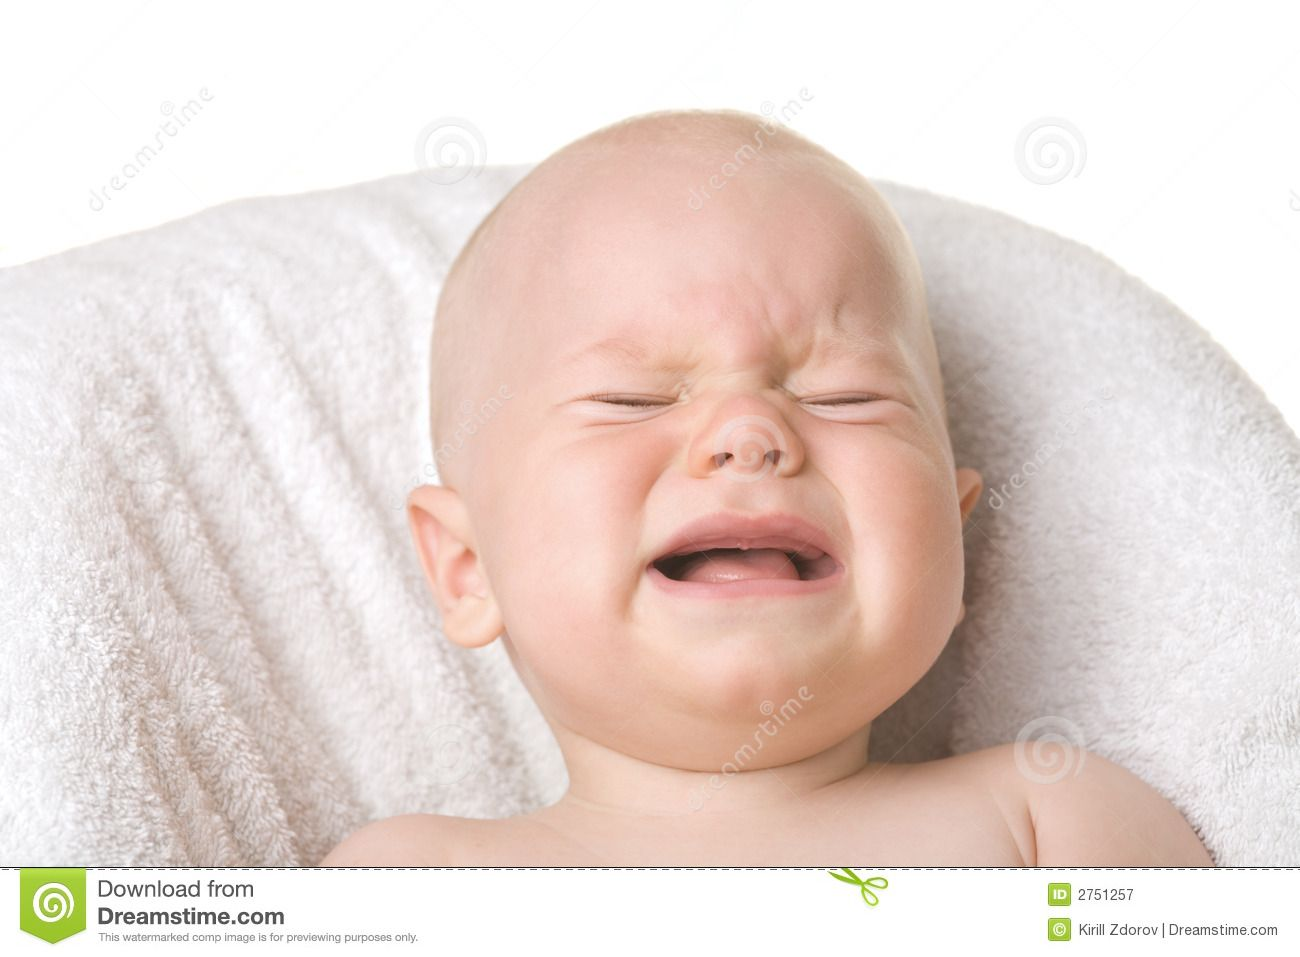 Crying Baby A Portrait Of A Crying Baby Isolated Sponsored Baby Crying Portrait Crying Isolated Baby Crying Baby Crying